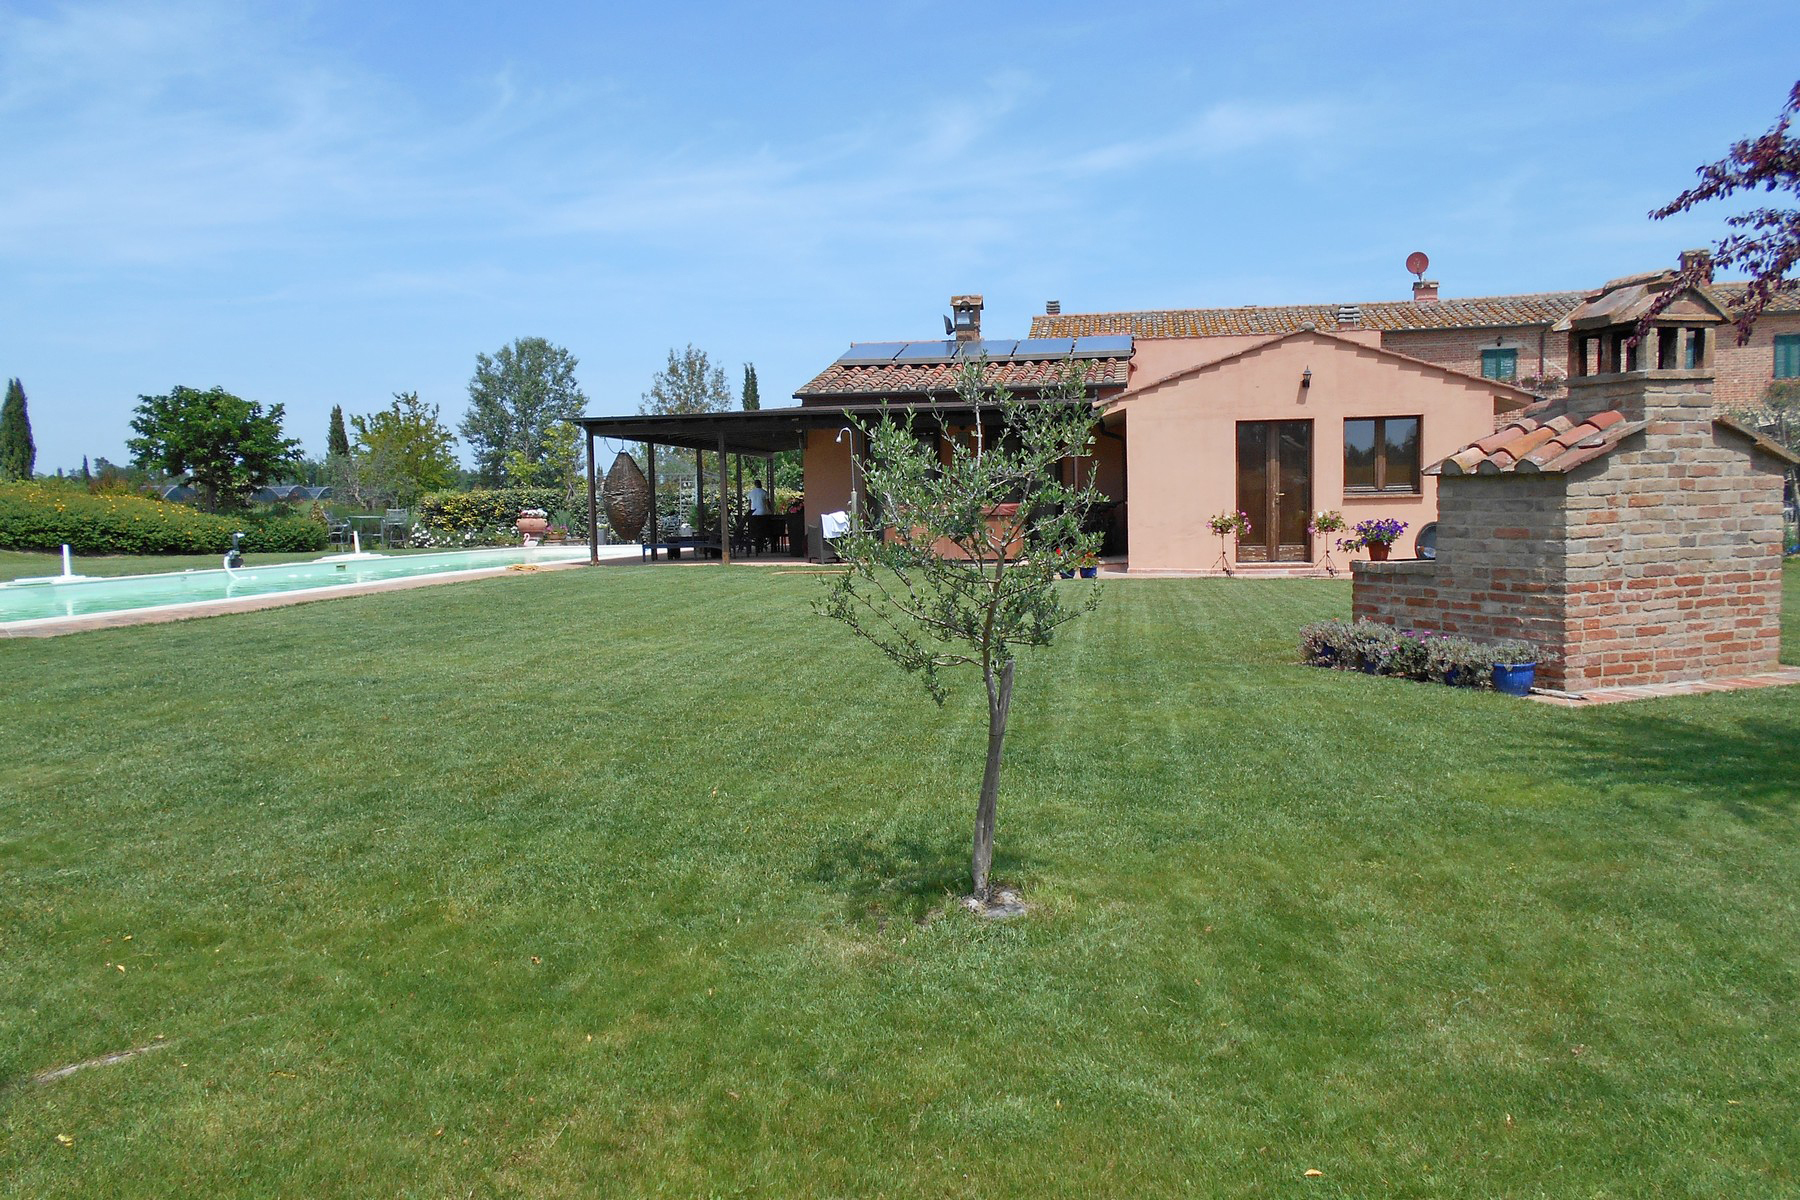 Additional photo for property listing at Exclusive property with pool and tennis court Località Ferretto Other Perugia, Perugia 06010 Italy